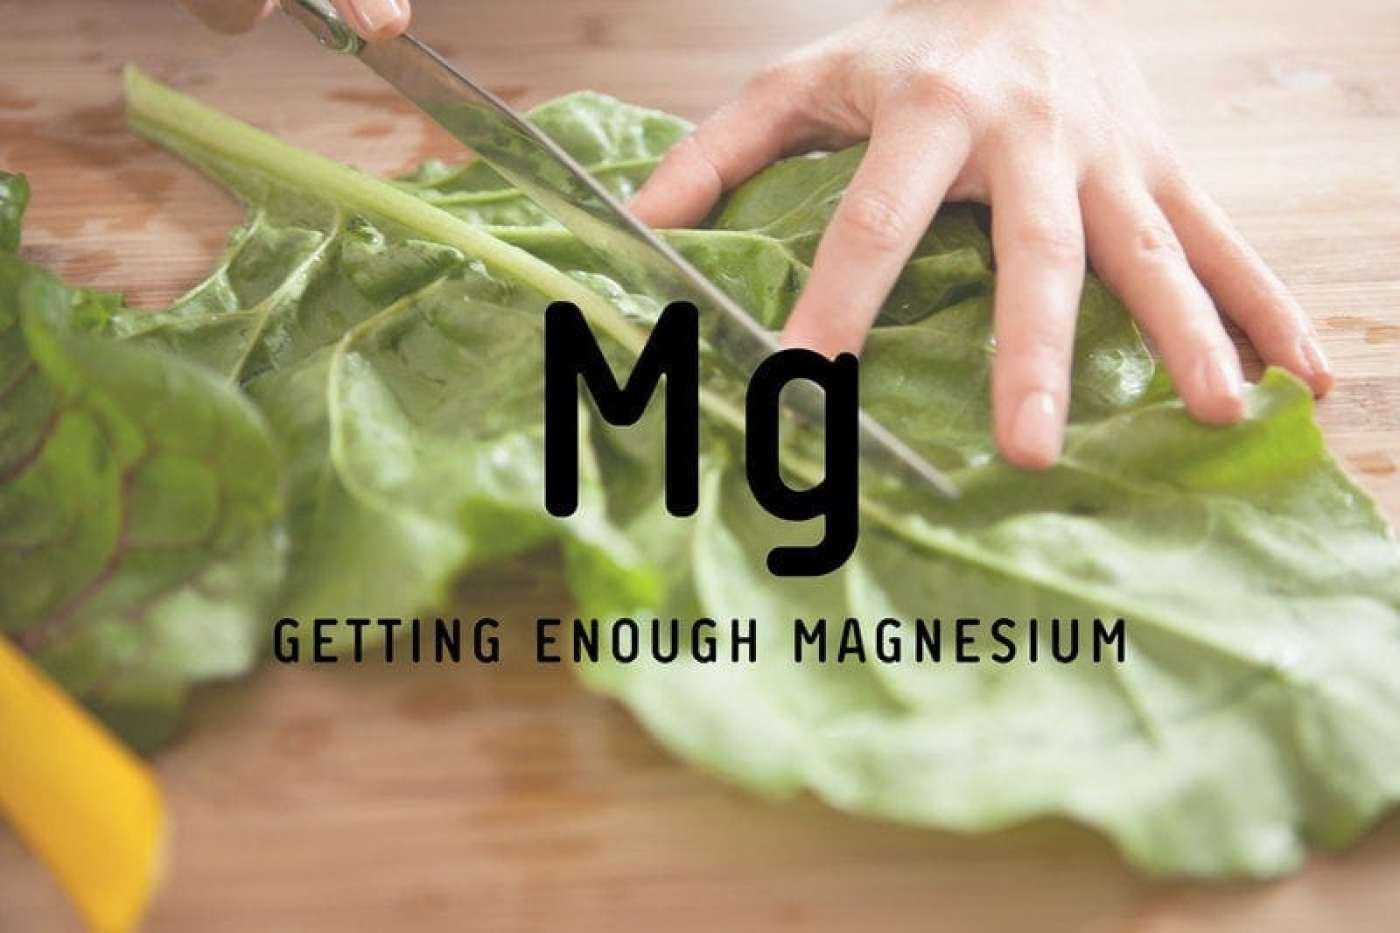 Are you getting enough magnesium? + Top sources of magnesium